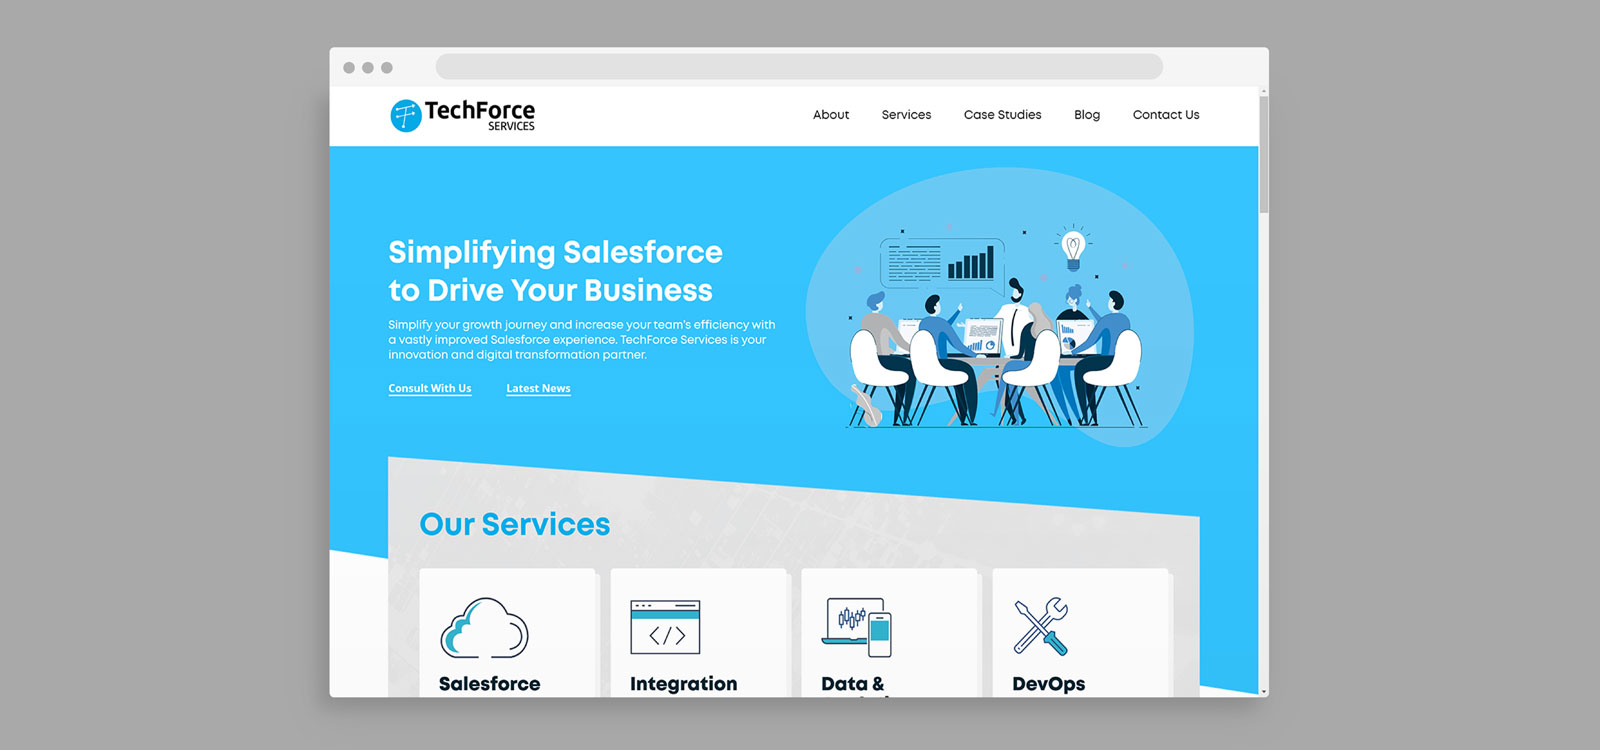 TechForce Web design